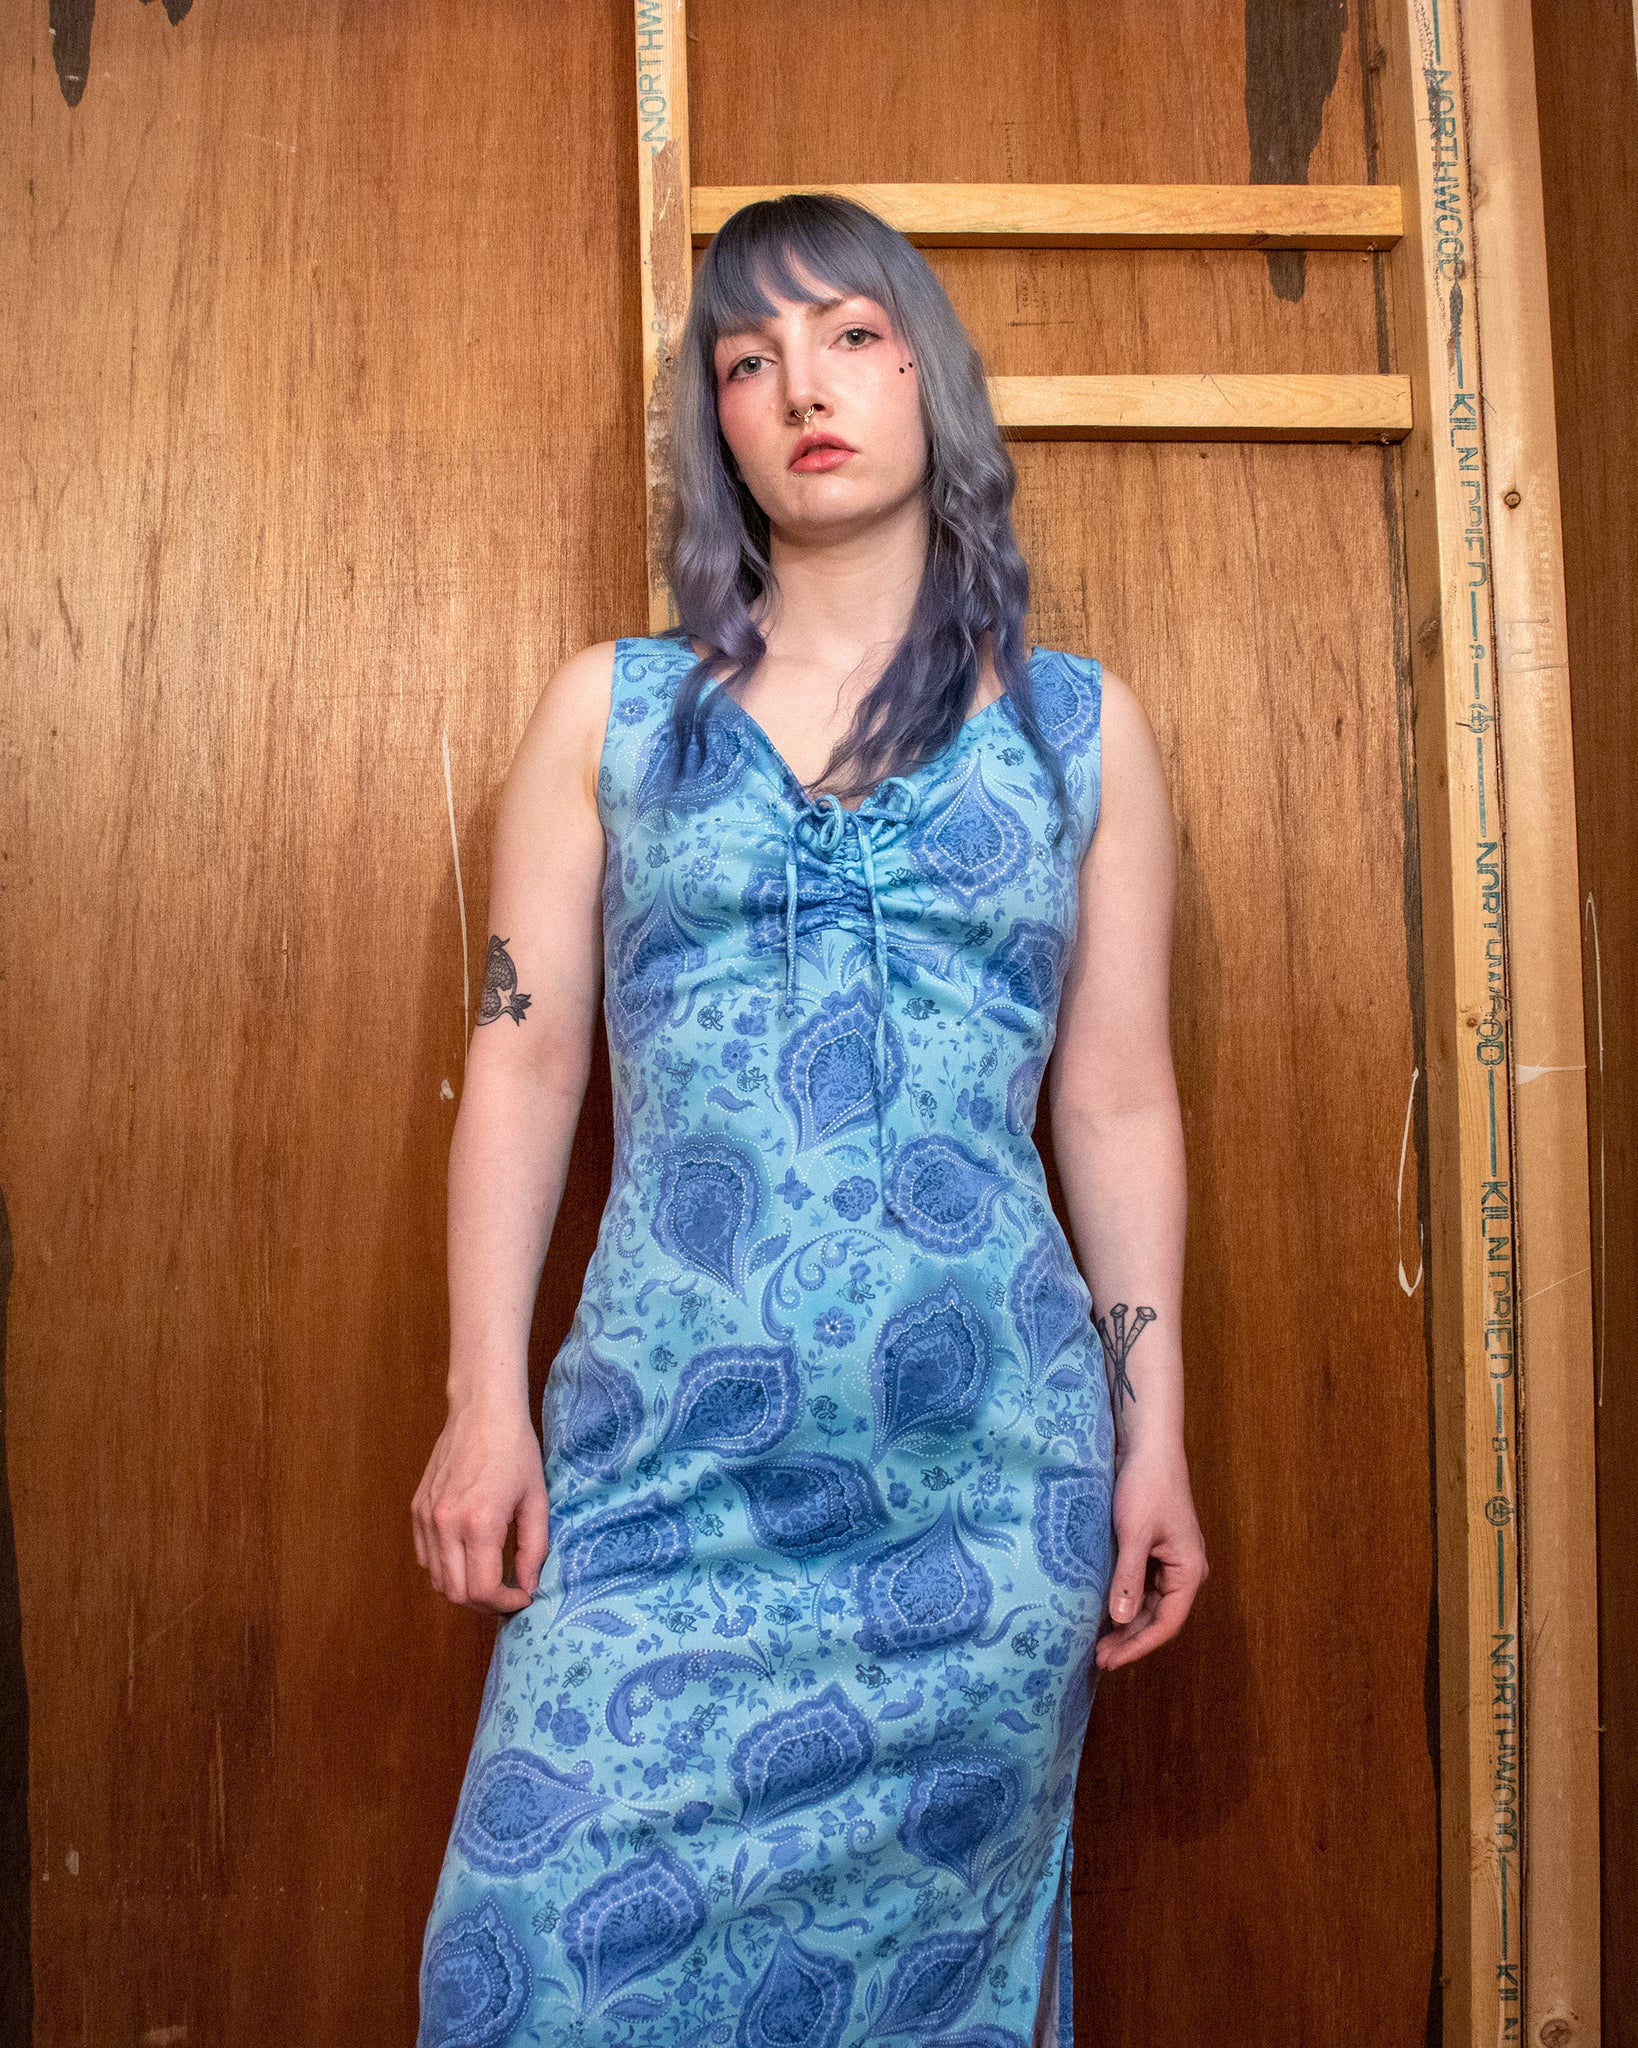 MEDIUM/LARGE Vintage 90s Paisley Maxi Dress